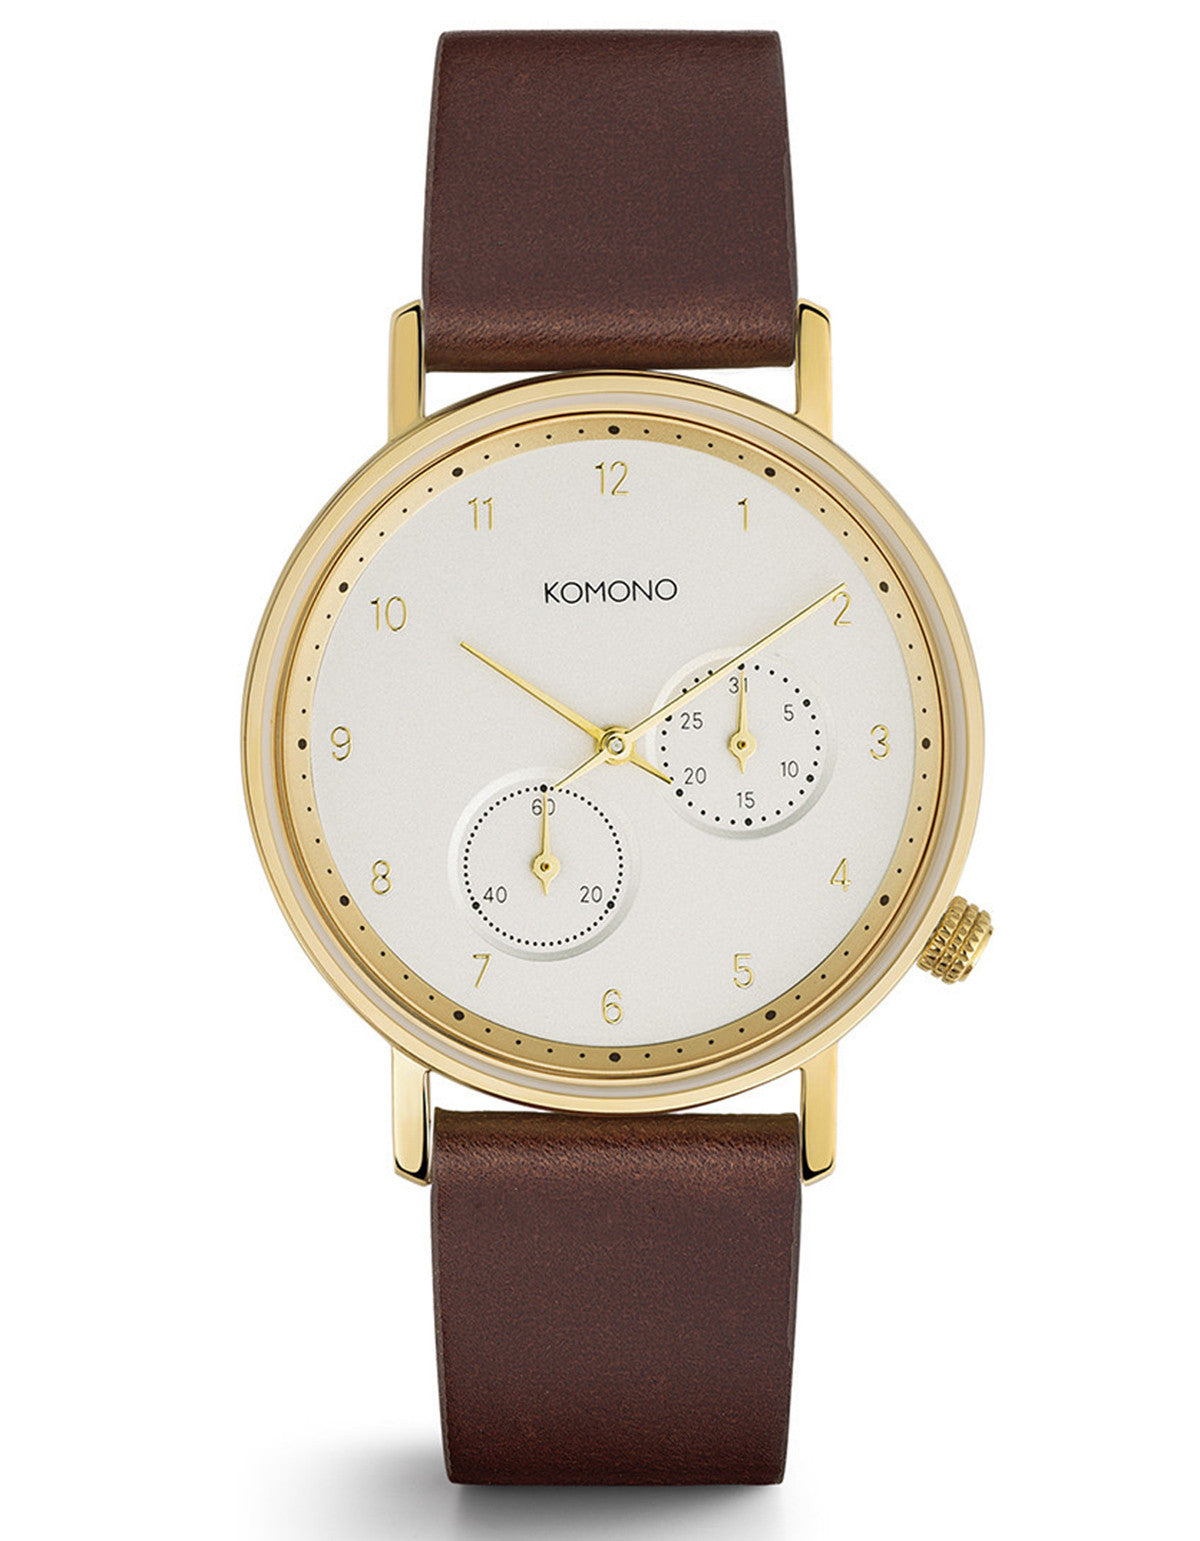 Komono Walther Crafted Watch Tobacco - Still Life - 1